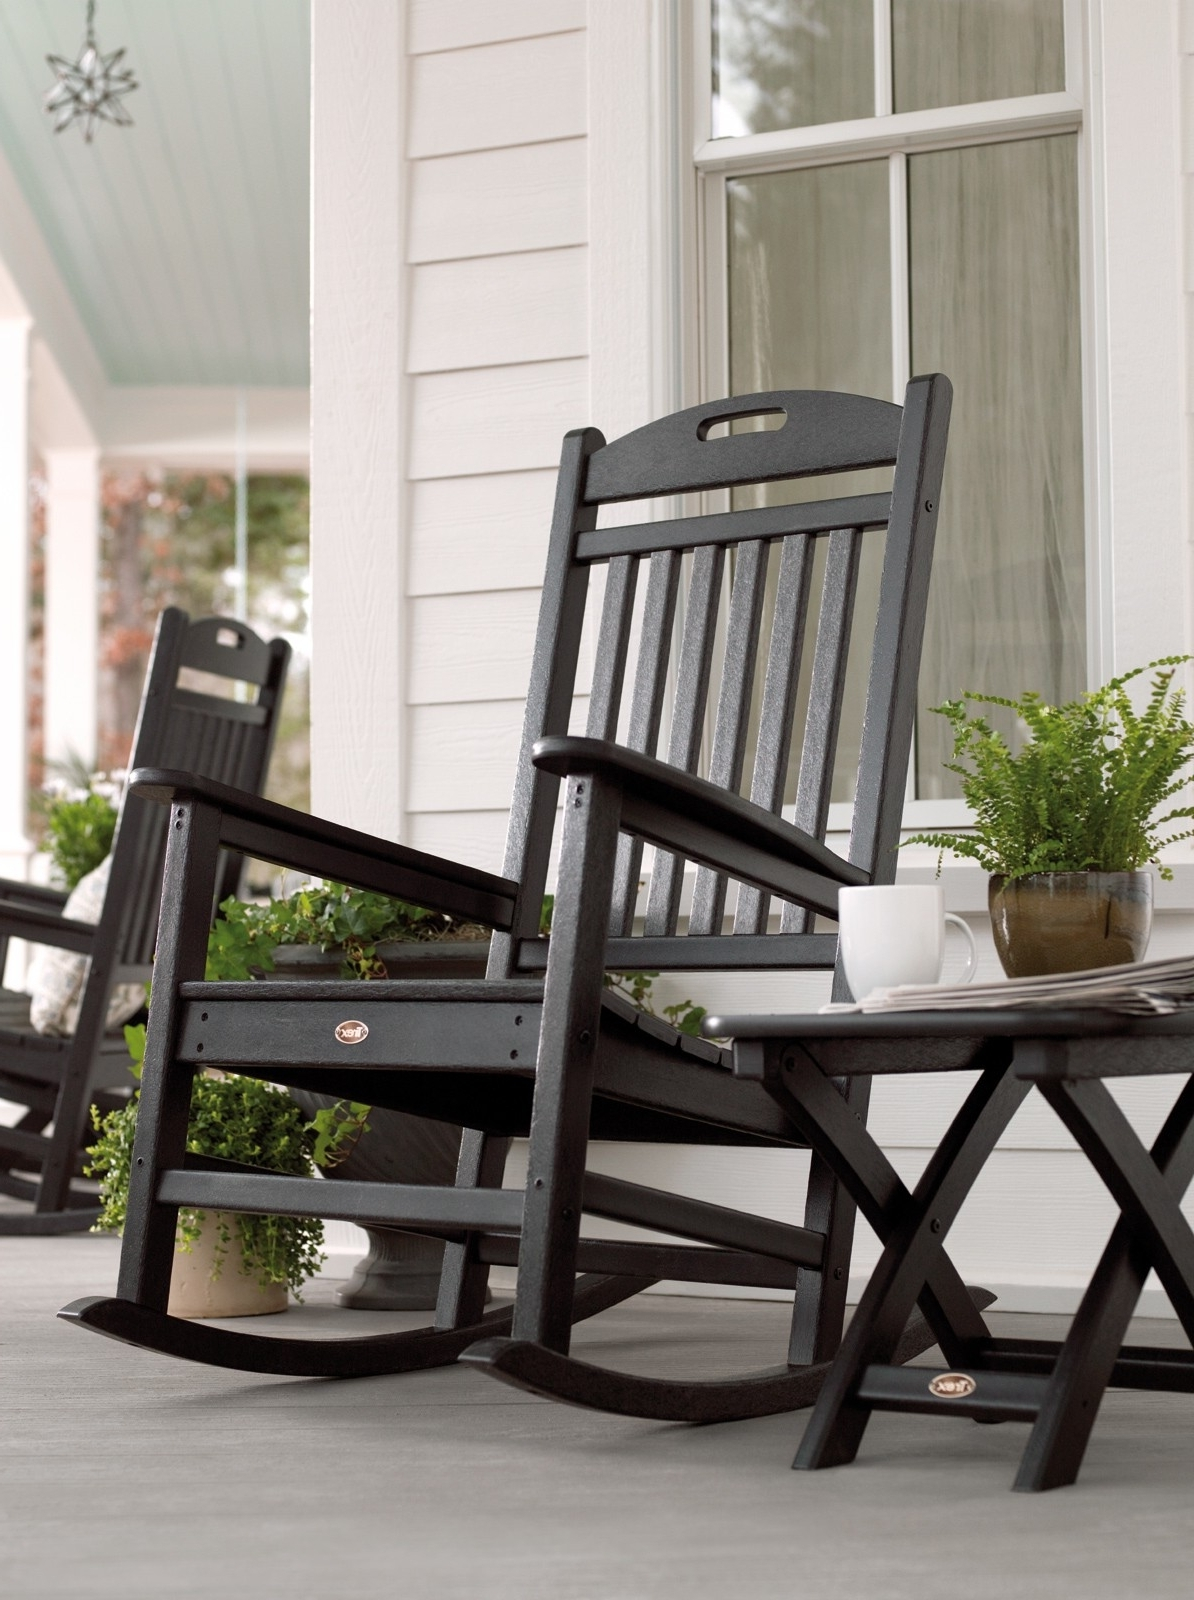 Patio Rocking Chairs And Table Within Most Popular Patio & Garden : Outdoor Rocking Chair Seat Cushions Outdoor Rocking (View 13 of 15)